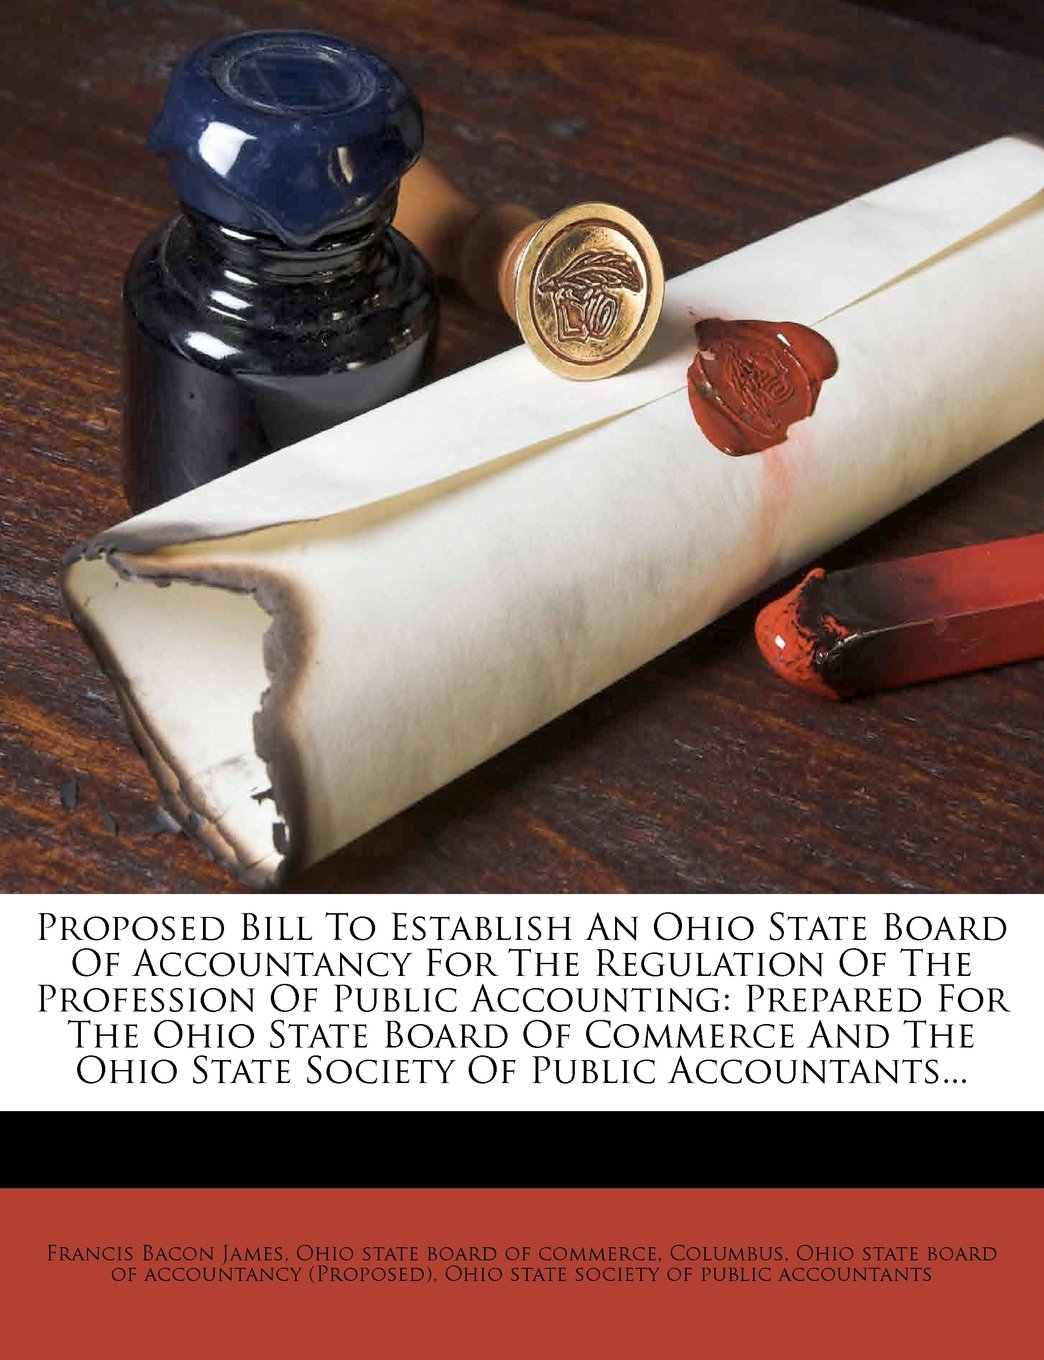 Proposed Bill To Establish An Ohio State Board Of Accountancy For The Regulation Of The Profession Of Public Accounting: Prepared For The Ohio State ... Ohio State Society Of Public Accountants... ebook